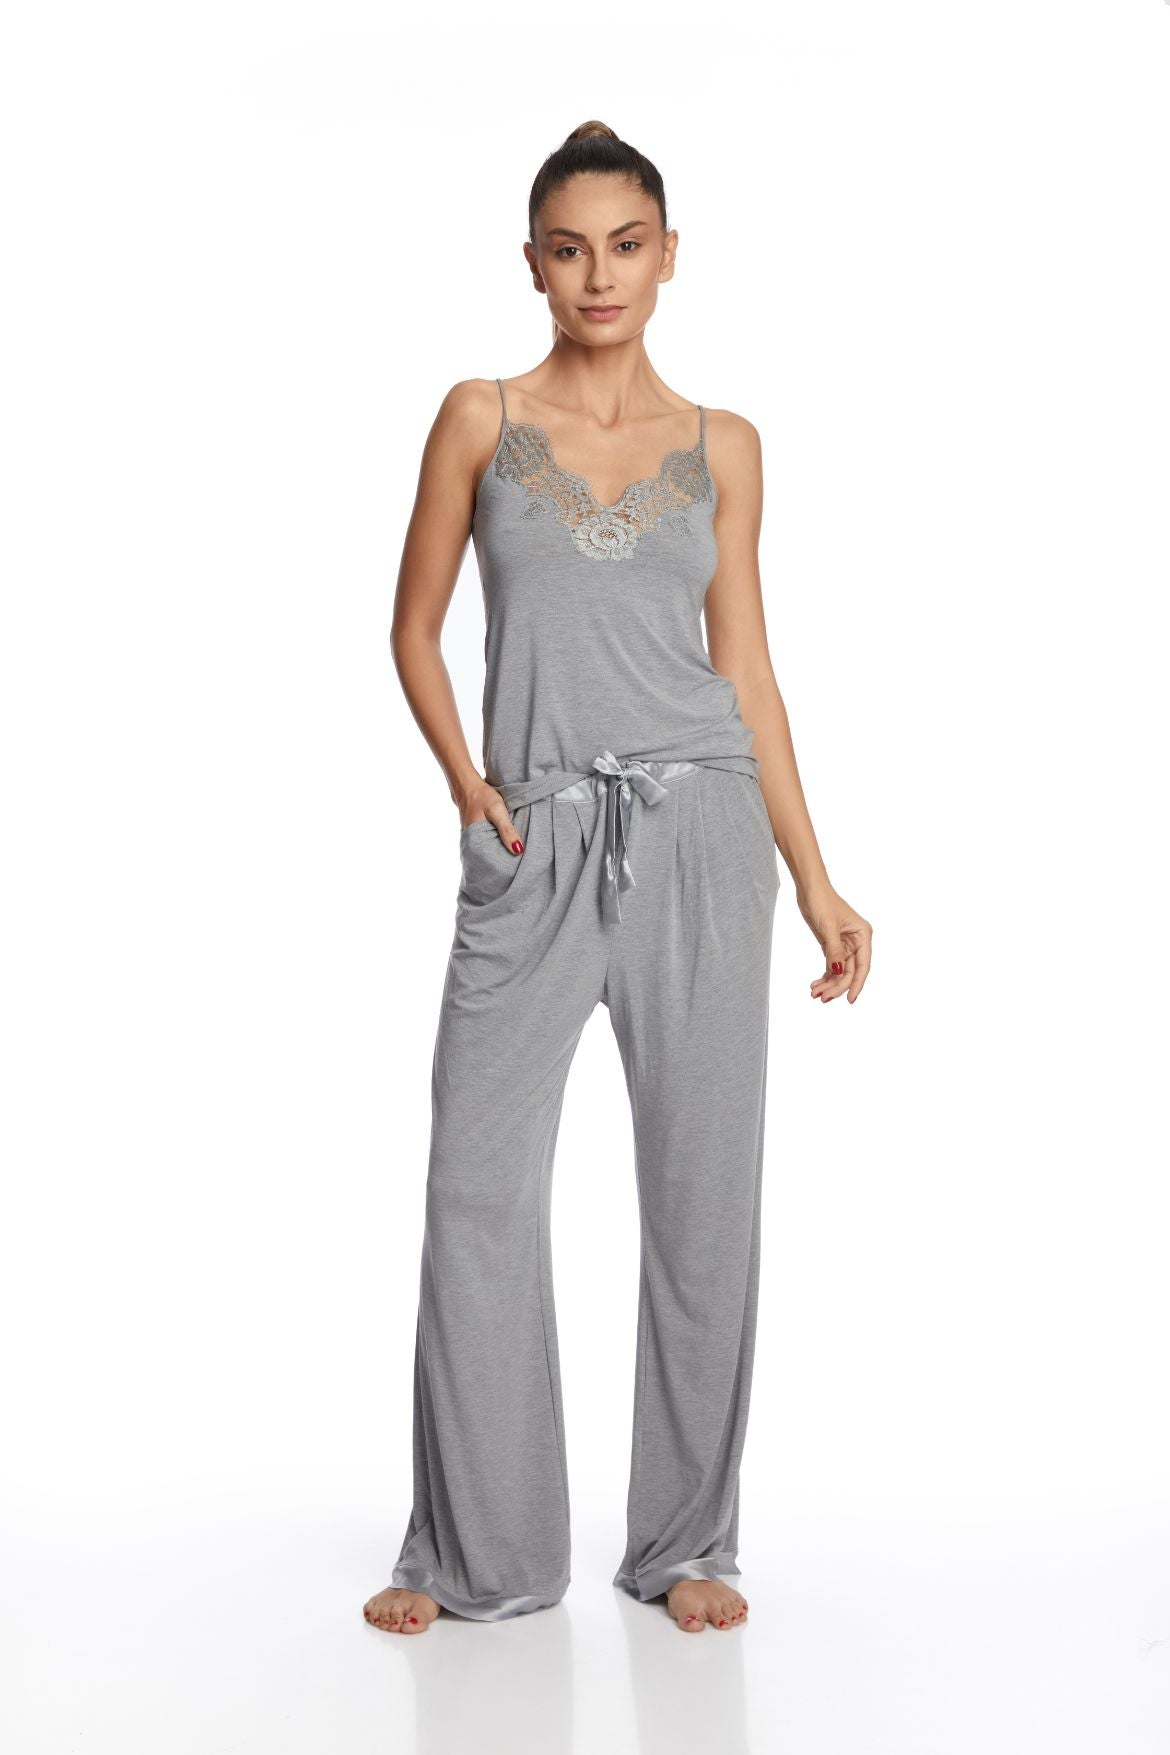 Heavenly Freshness Tank Top in Silver Grey - I.D. Sarrieri